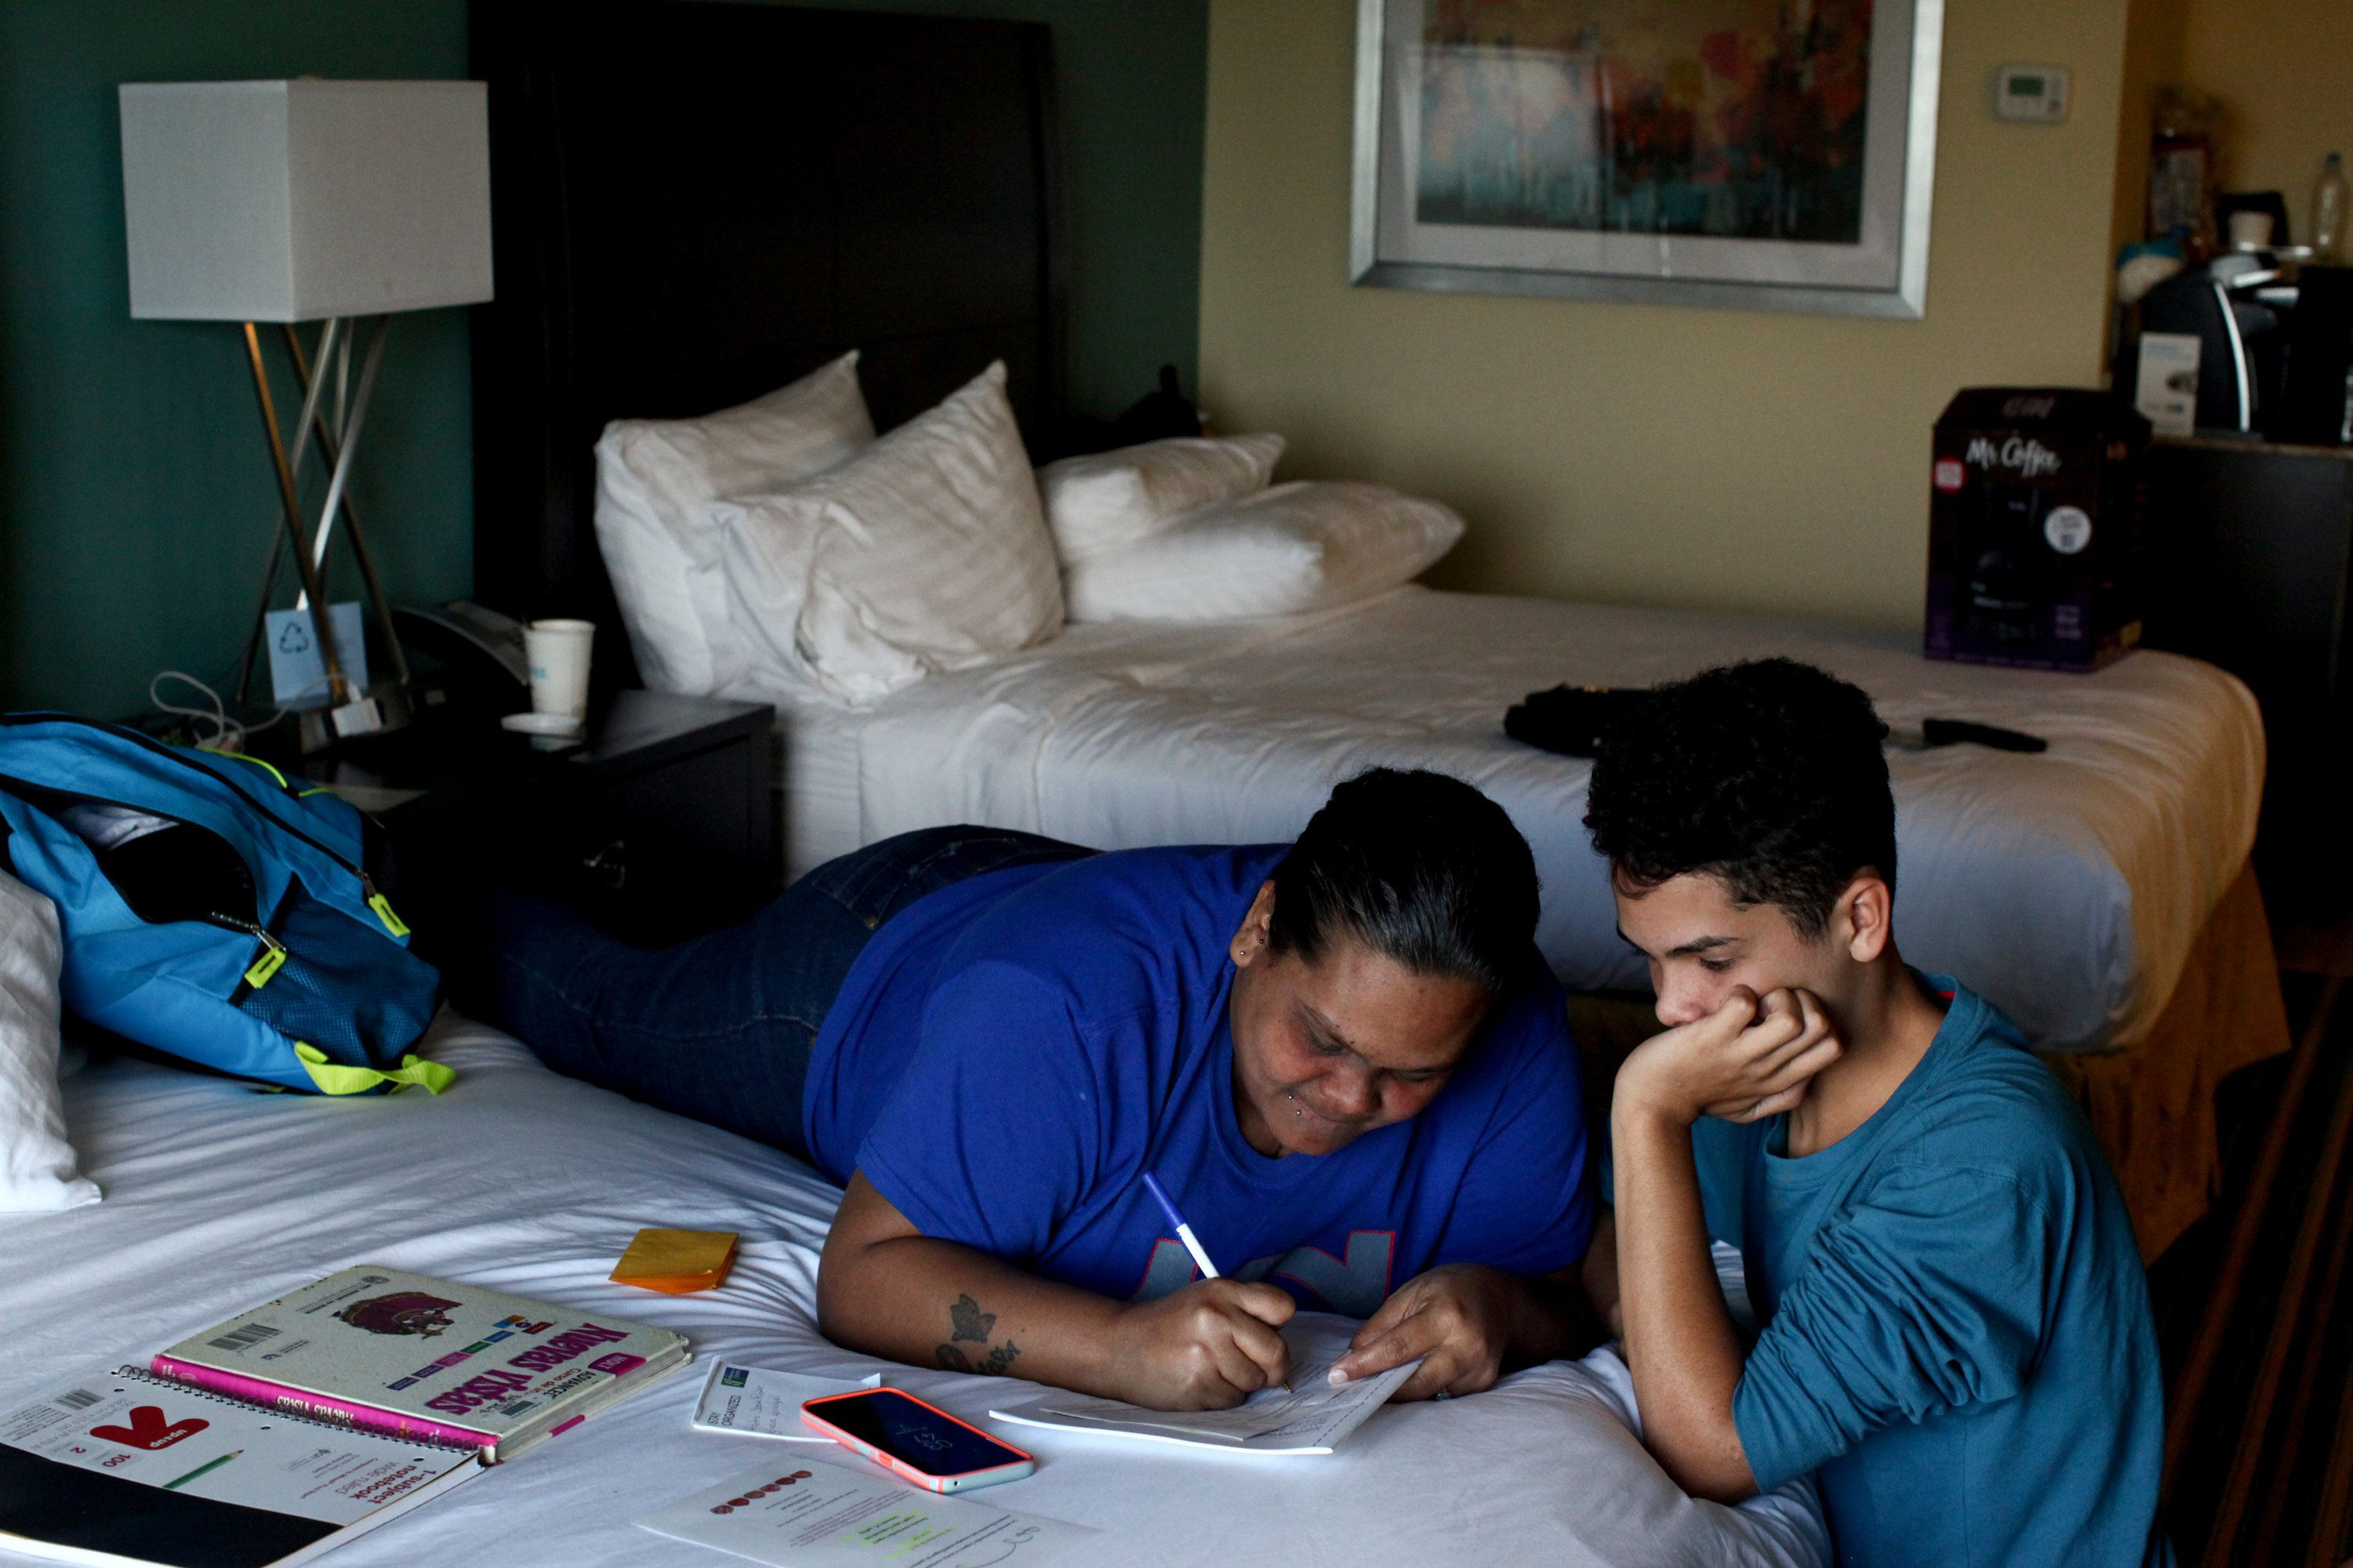 "Liz Vazquez helps her son Raymond Fernandez Vazquez with his homework in a hotel room where they live, in Orlando, Florida, U.S., December 6, 2017. Liz, her husband and their two sons arrived to Florida after Hurricane Maria hit Puerto Rico in late September. The hotel provides a temporary housing for displaced Puerto Ricans. REUTERS/Alvin Baez     SEARCH ""PUERTO RICO FLORIDA"" FOR THIS STORY. SEARCH ""WIDER IMAGE"" FOR ALL STORIES."